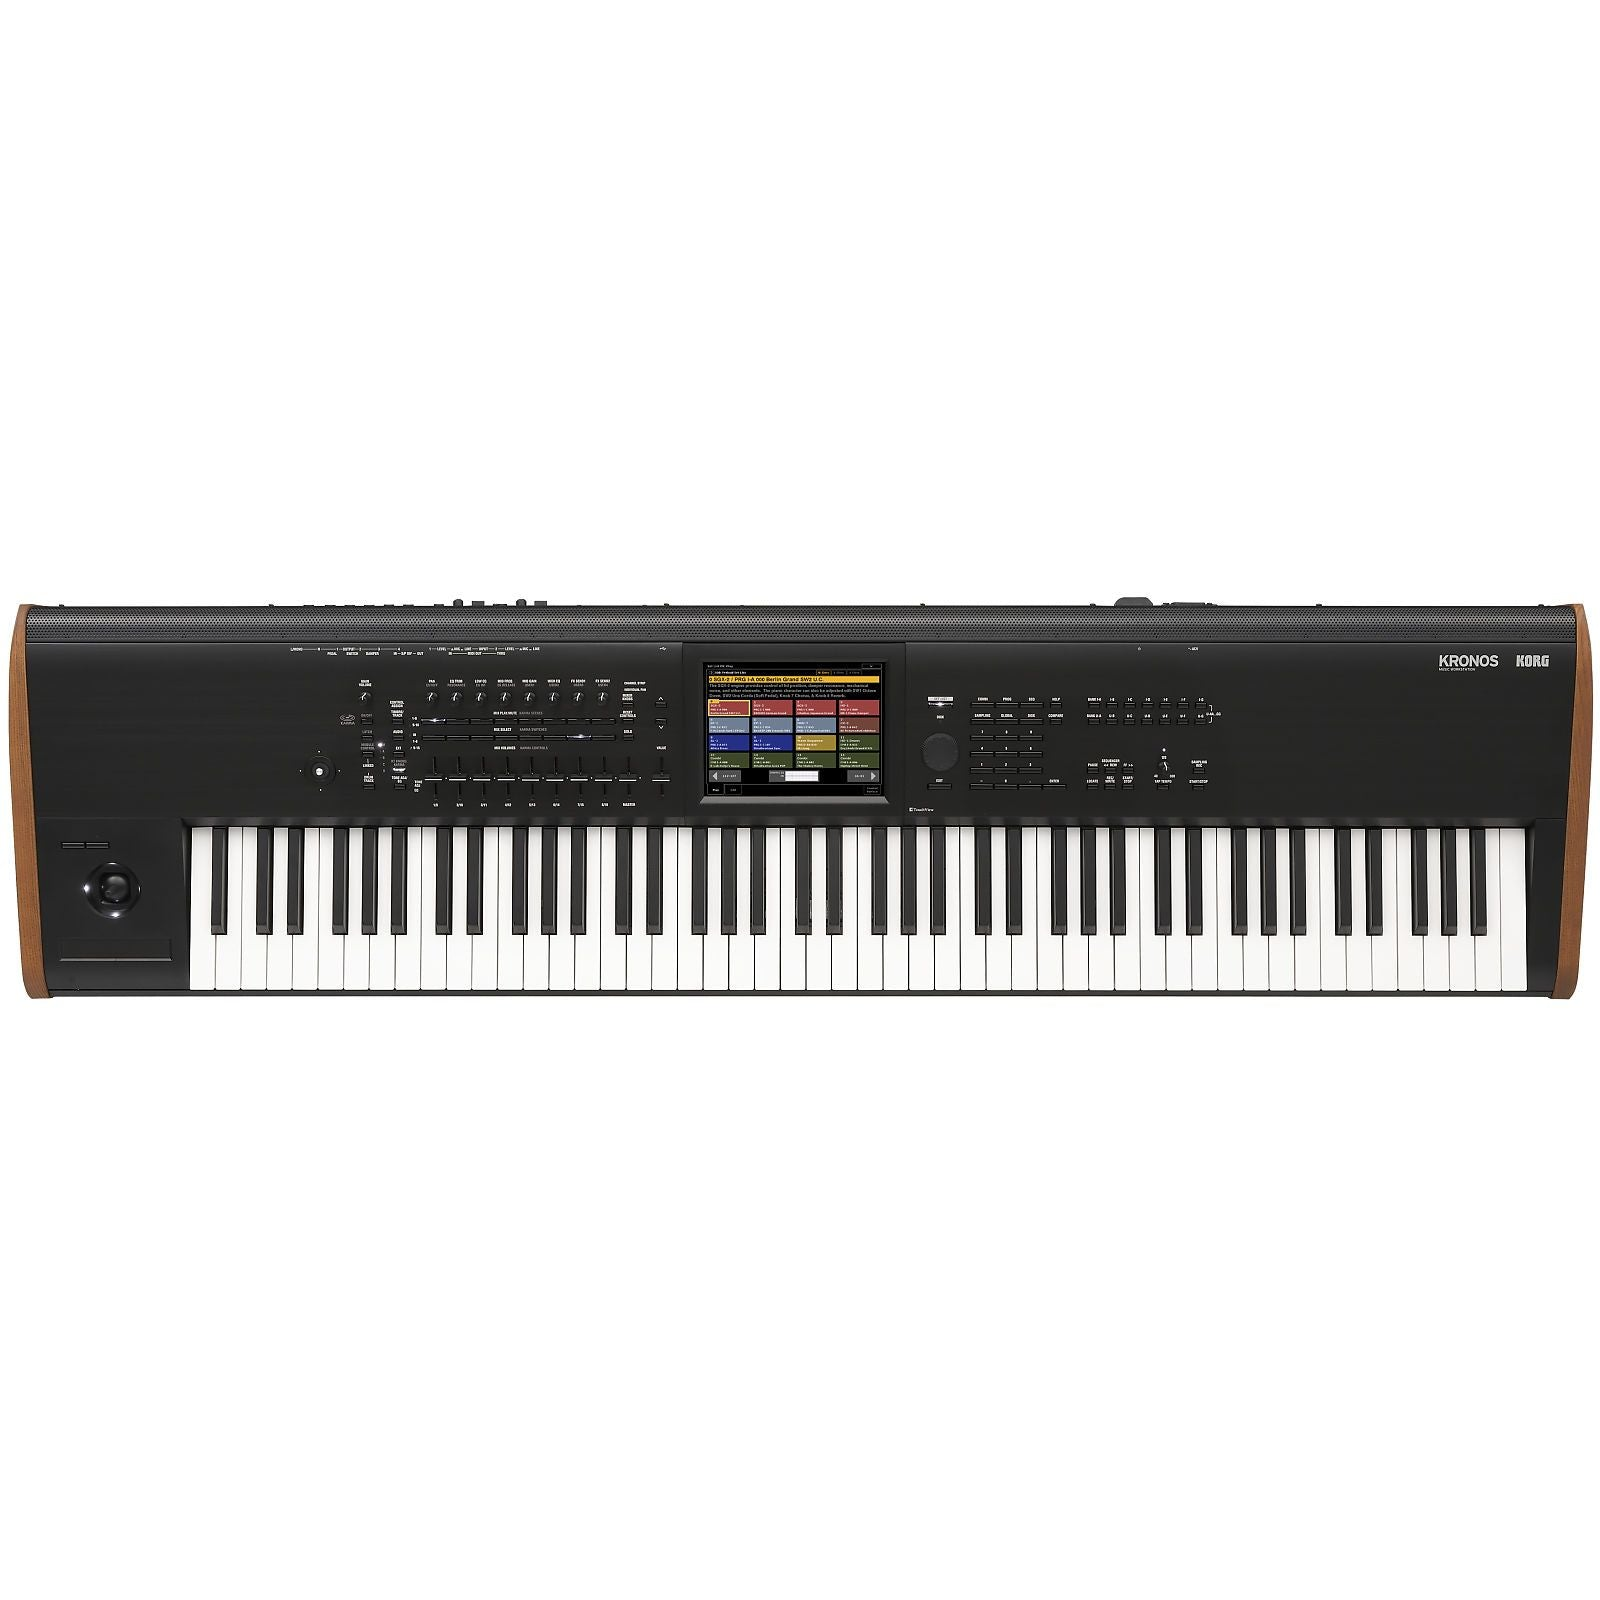 Korg Kronos 8 Music Workstation Keyboard, 88-Key, Black